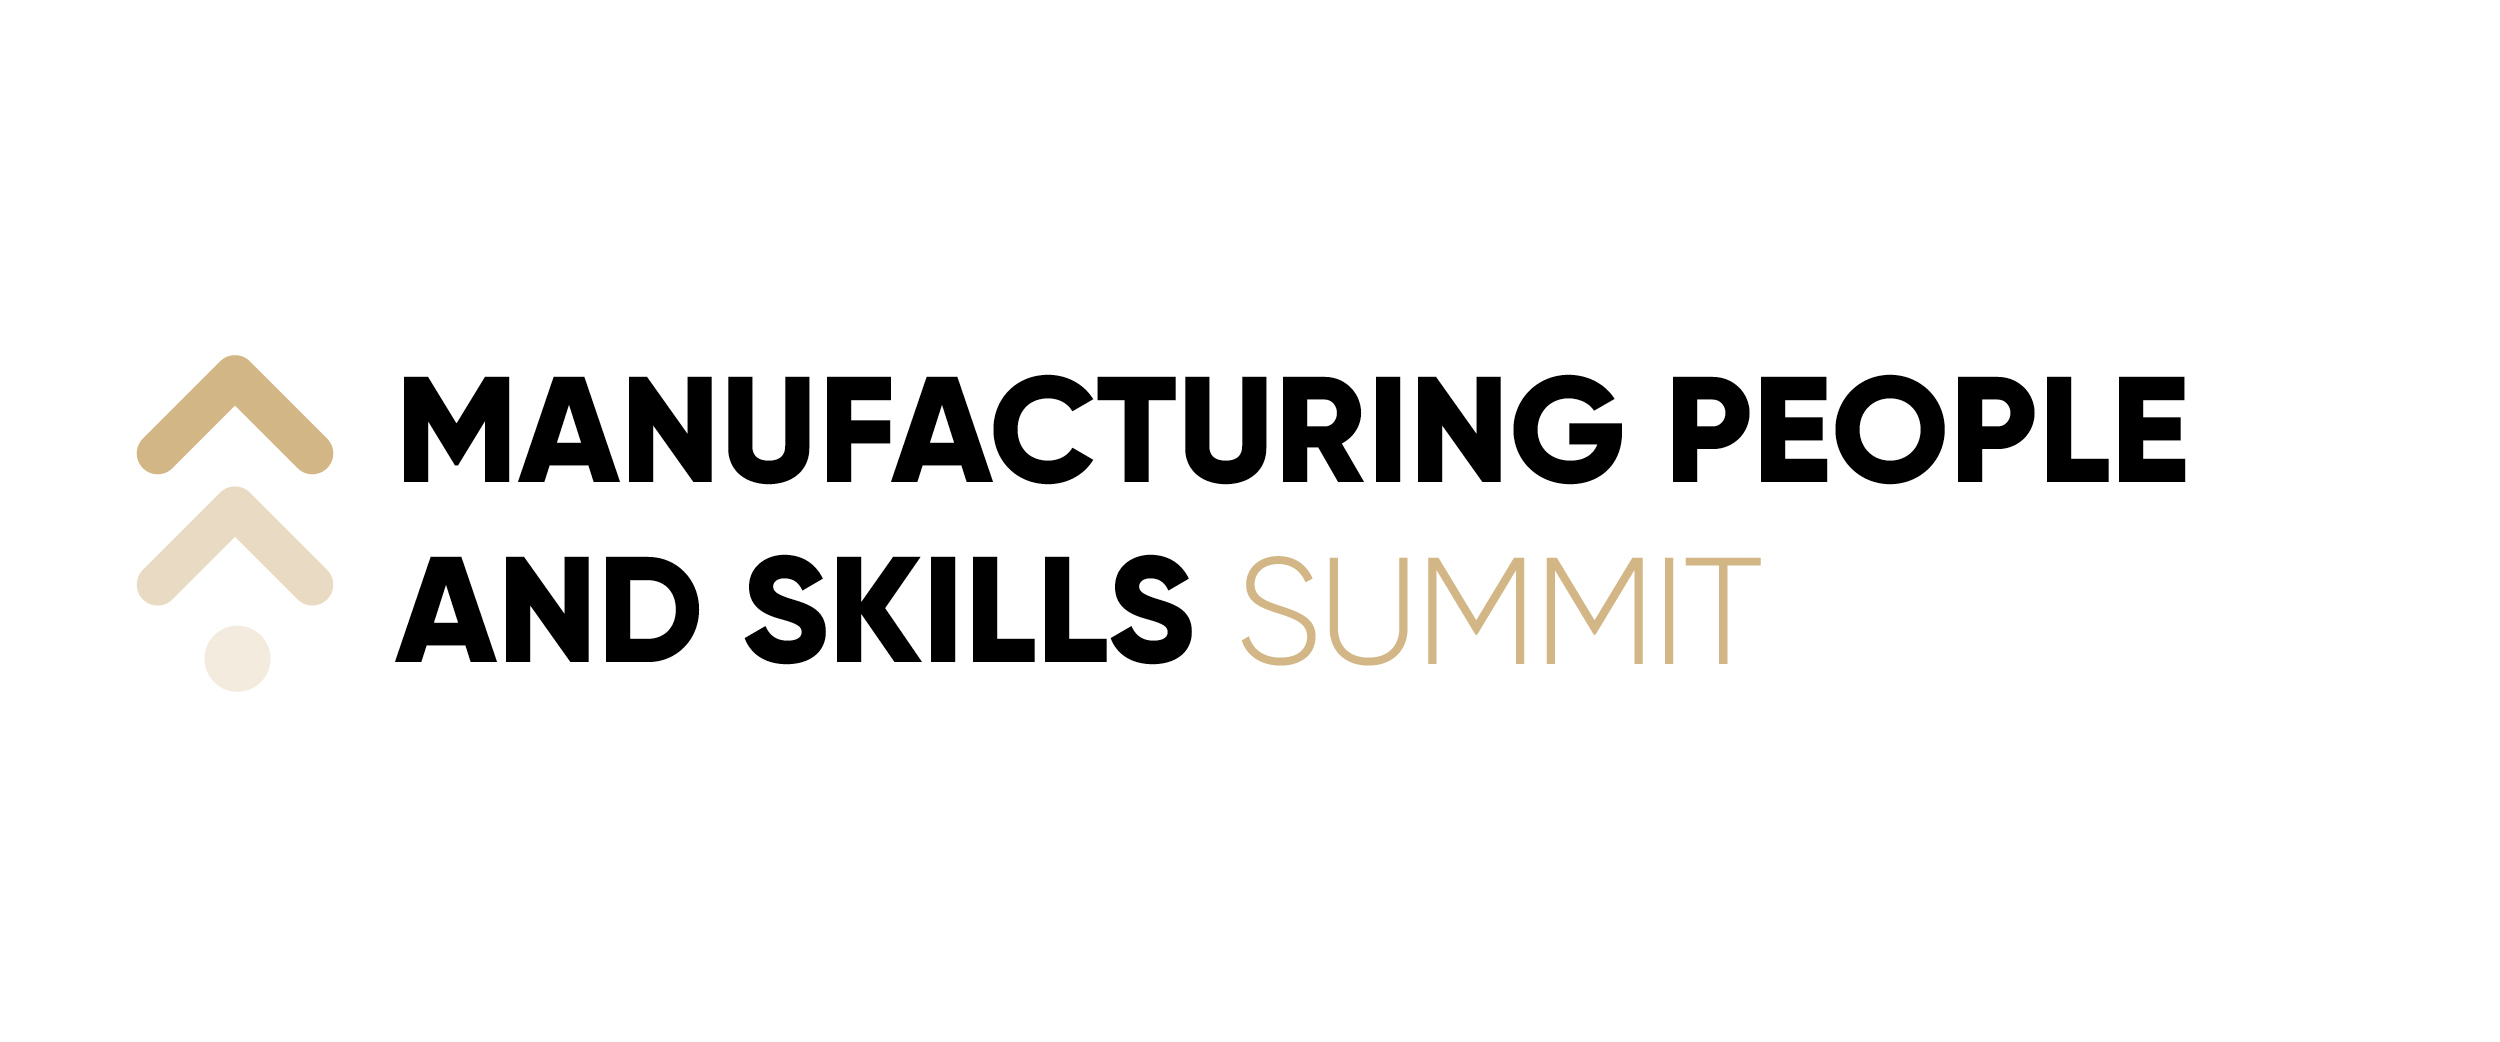 Manufacturing People and Skills Summit